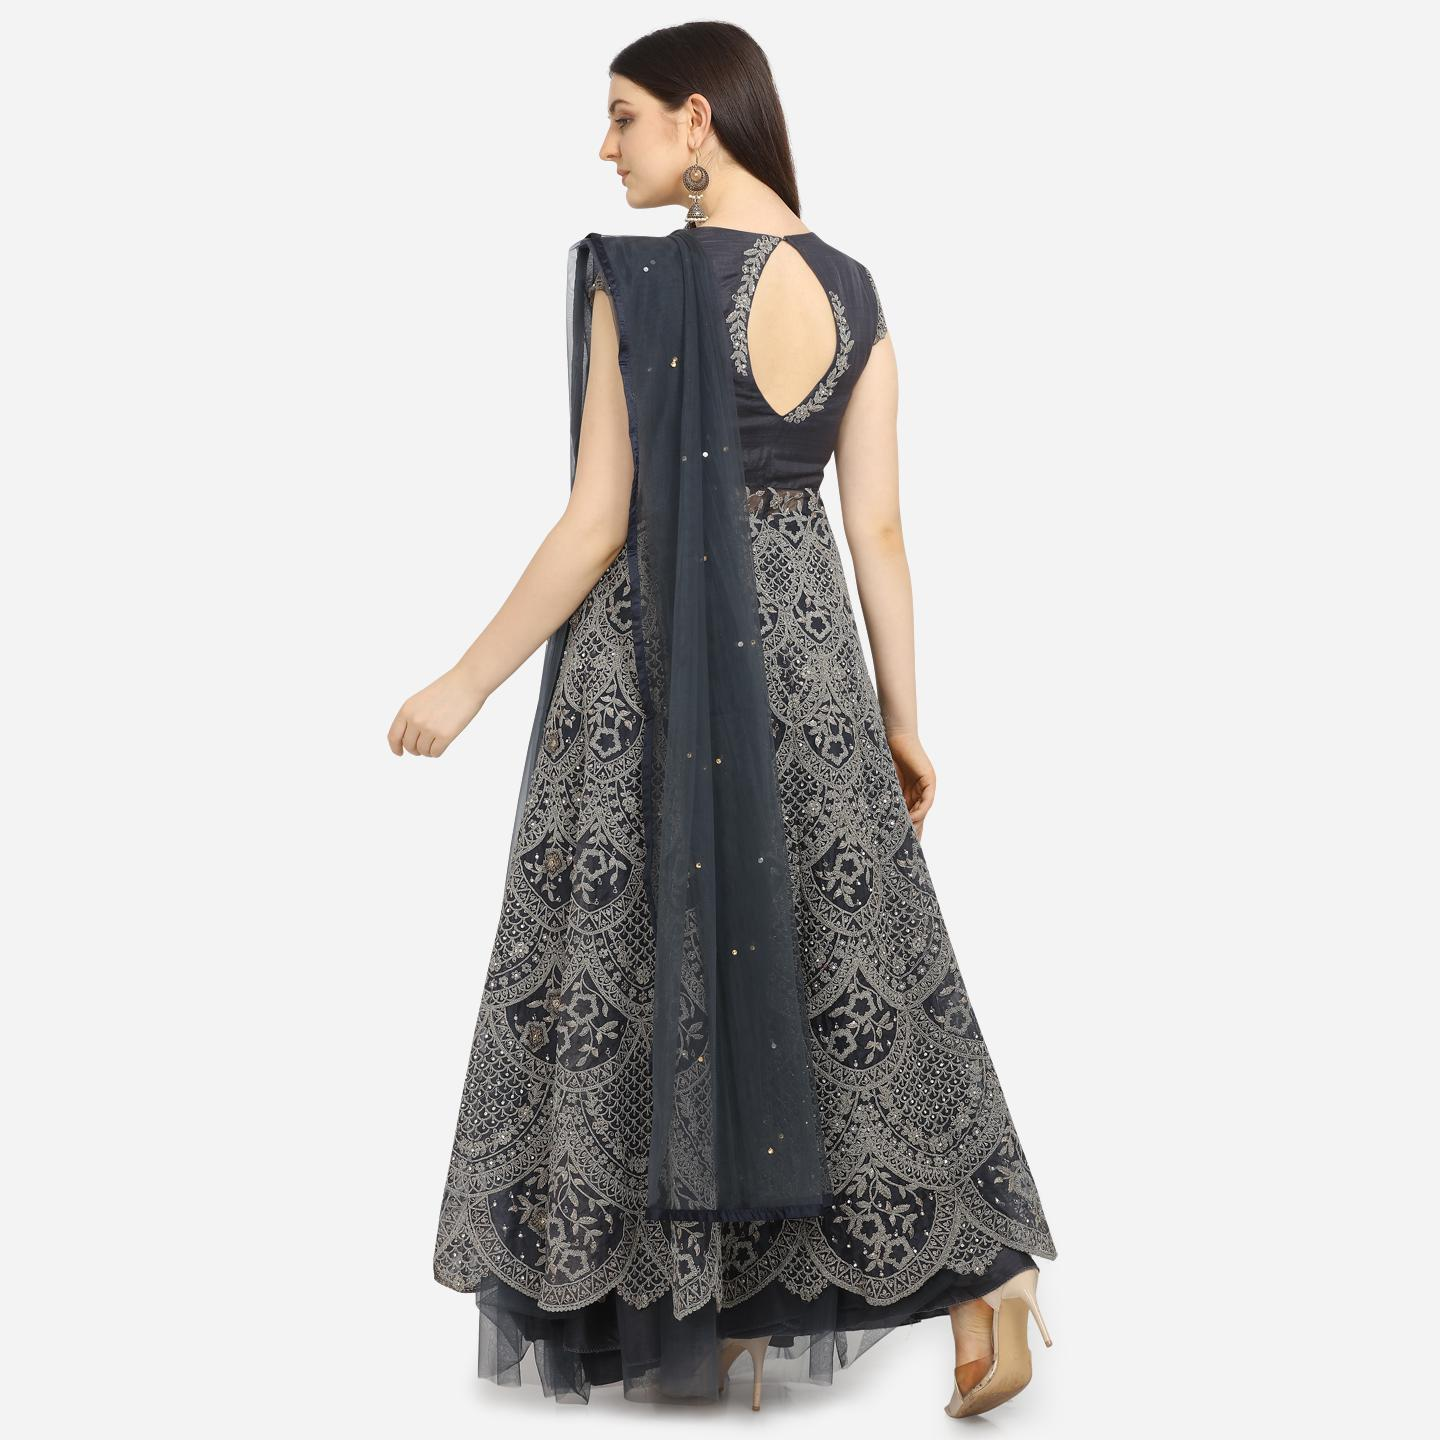 Stylee Lifestyle - Grey Colored Party Wear Embroidered Net Lehenga Kameez